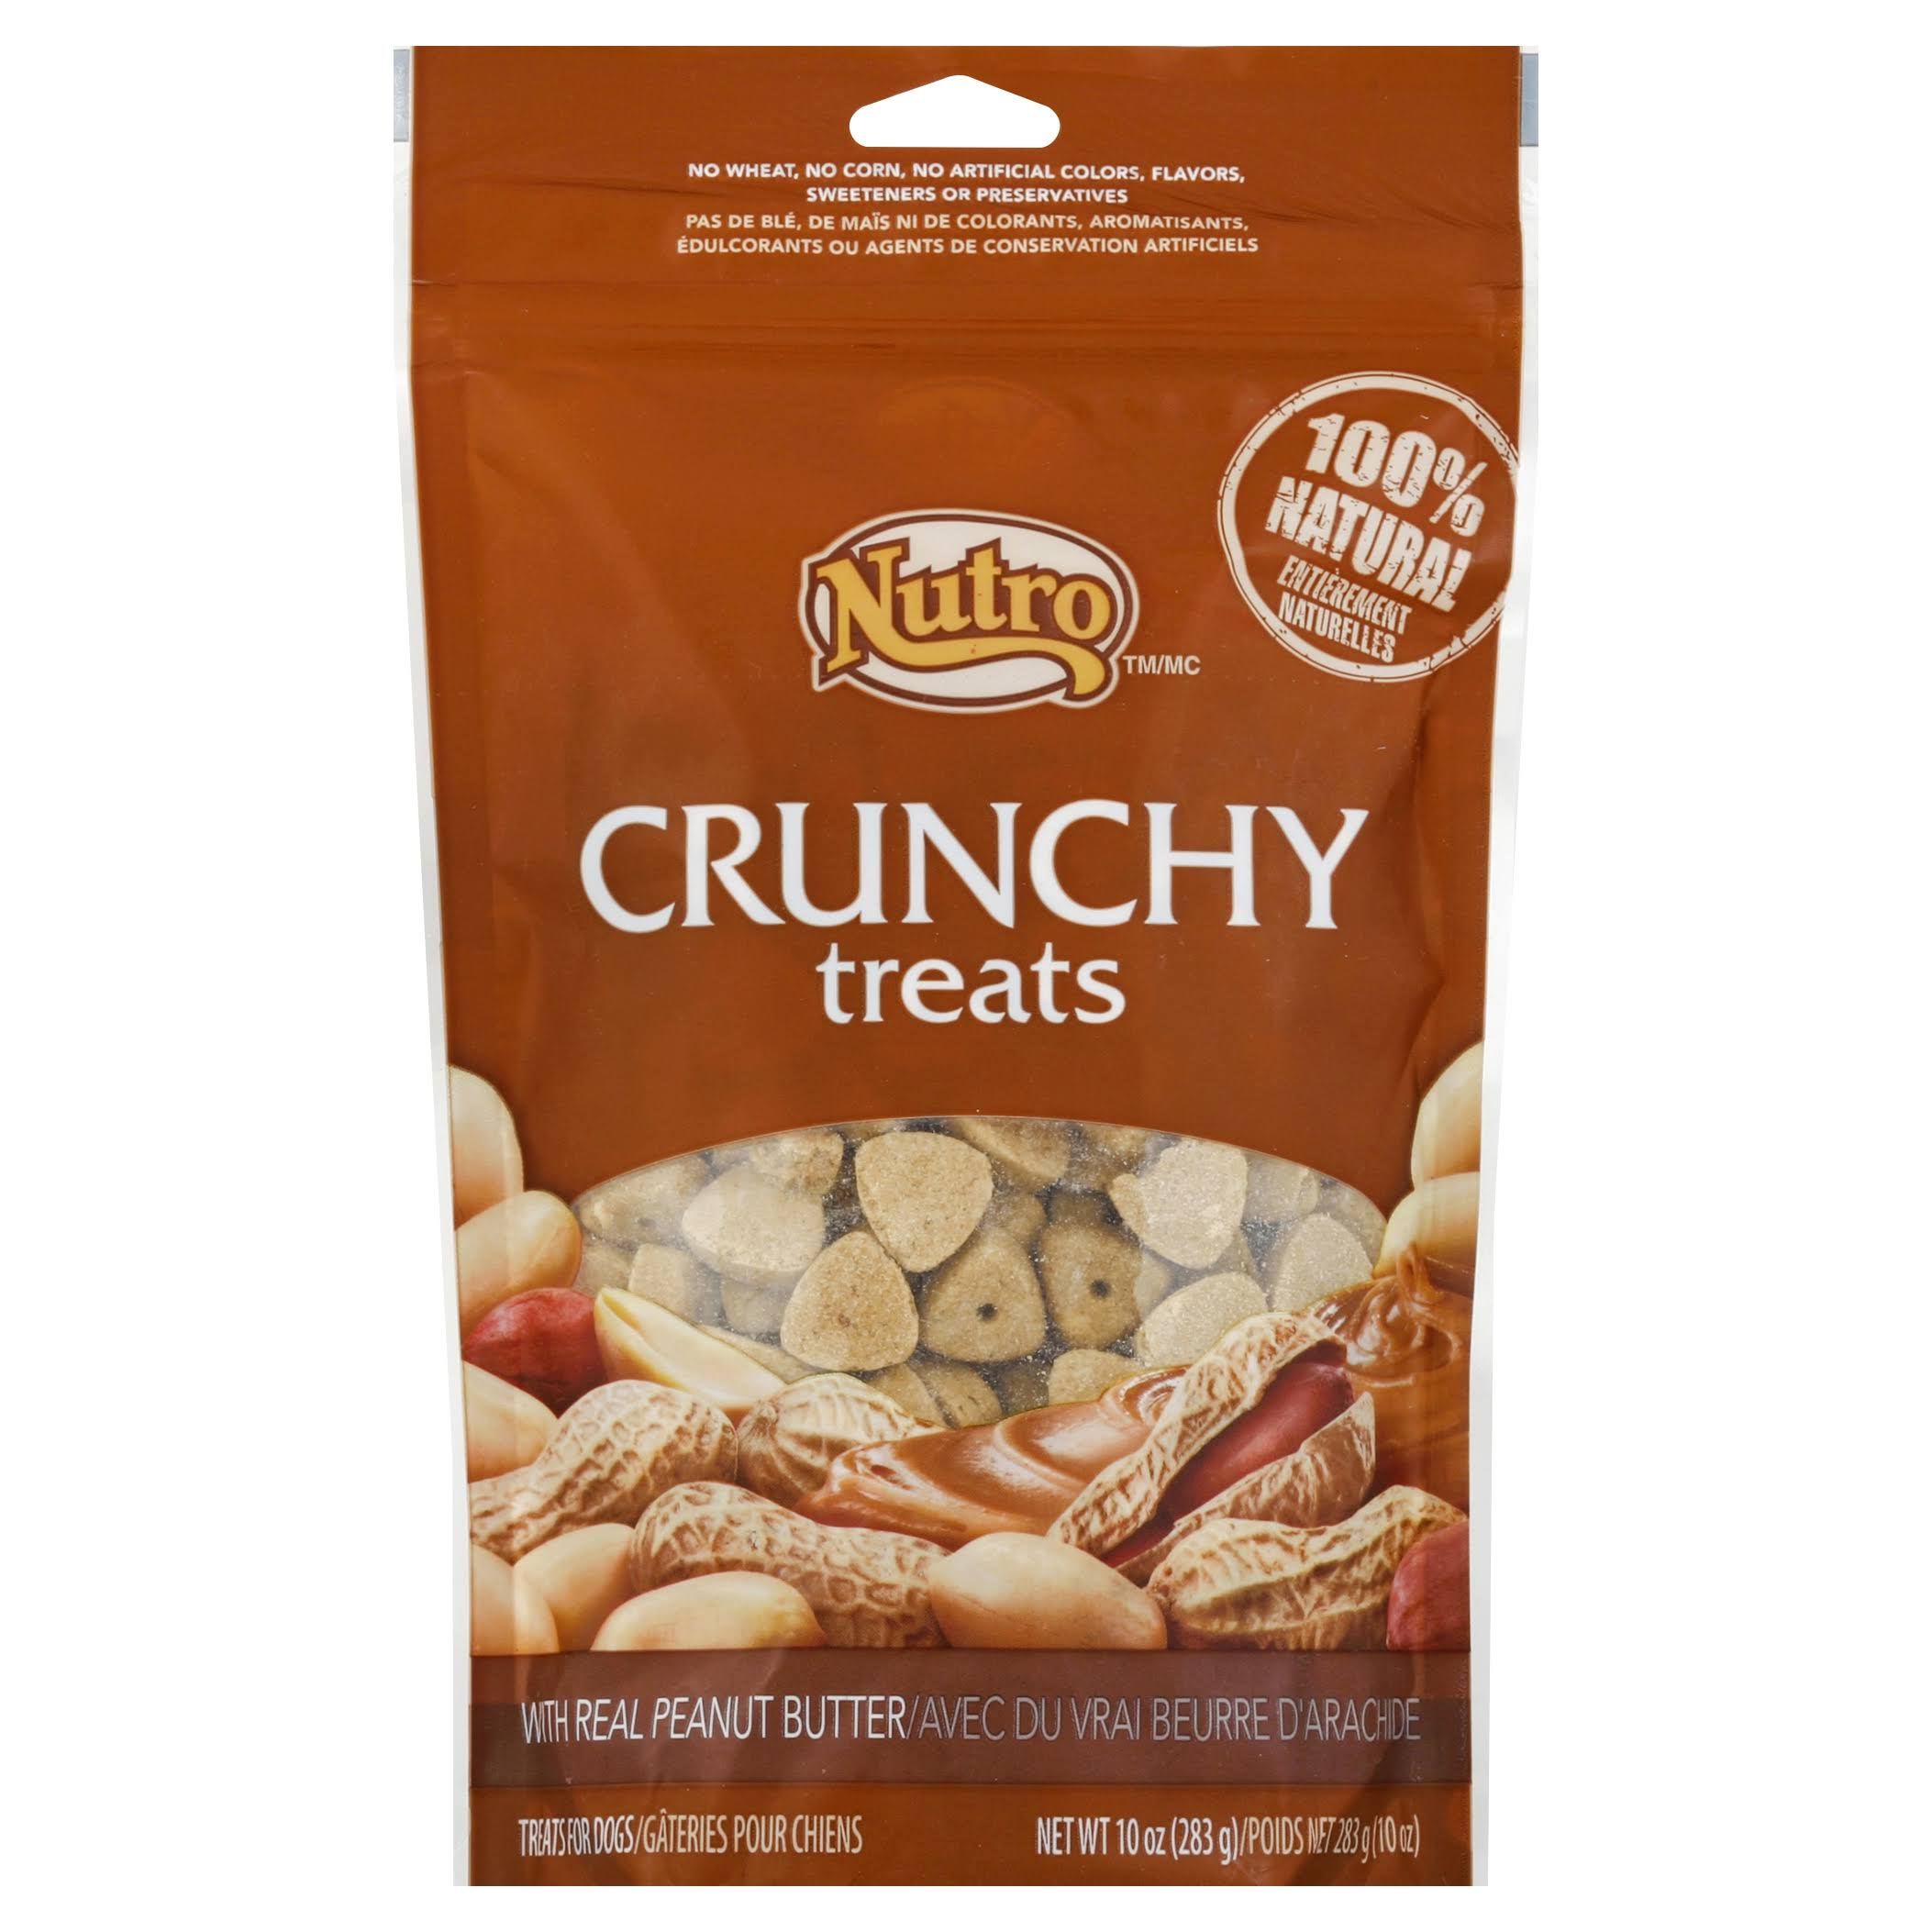 Nutro Crunchy Dog Treats - 10oz, Peanut Butter